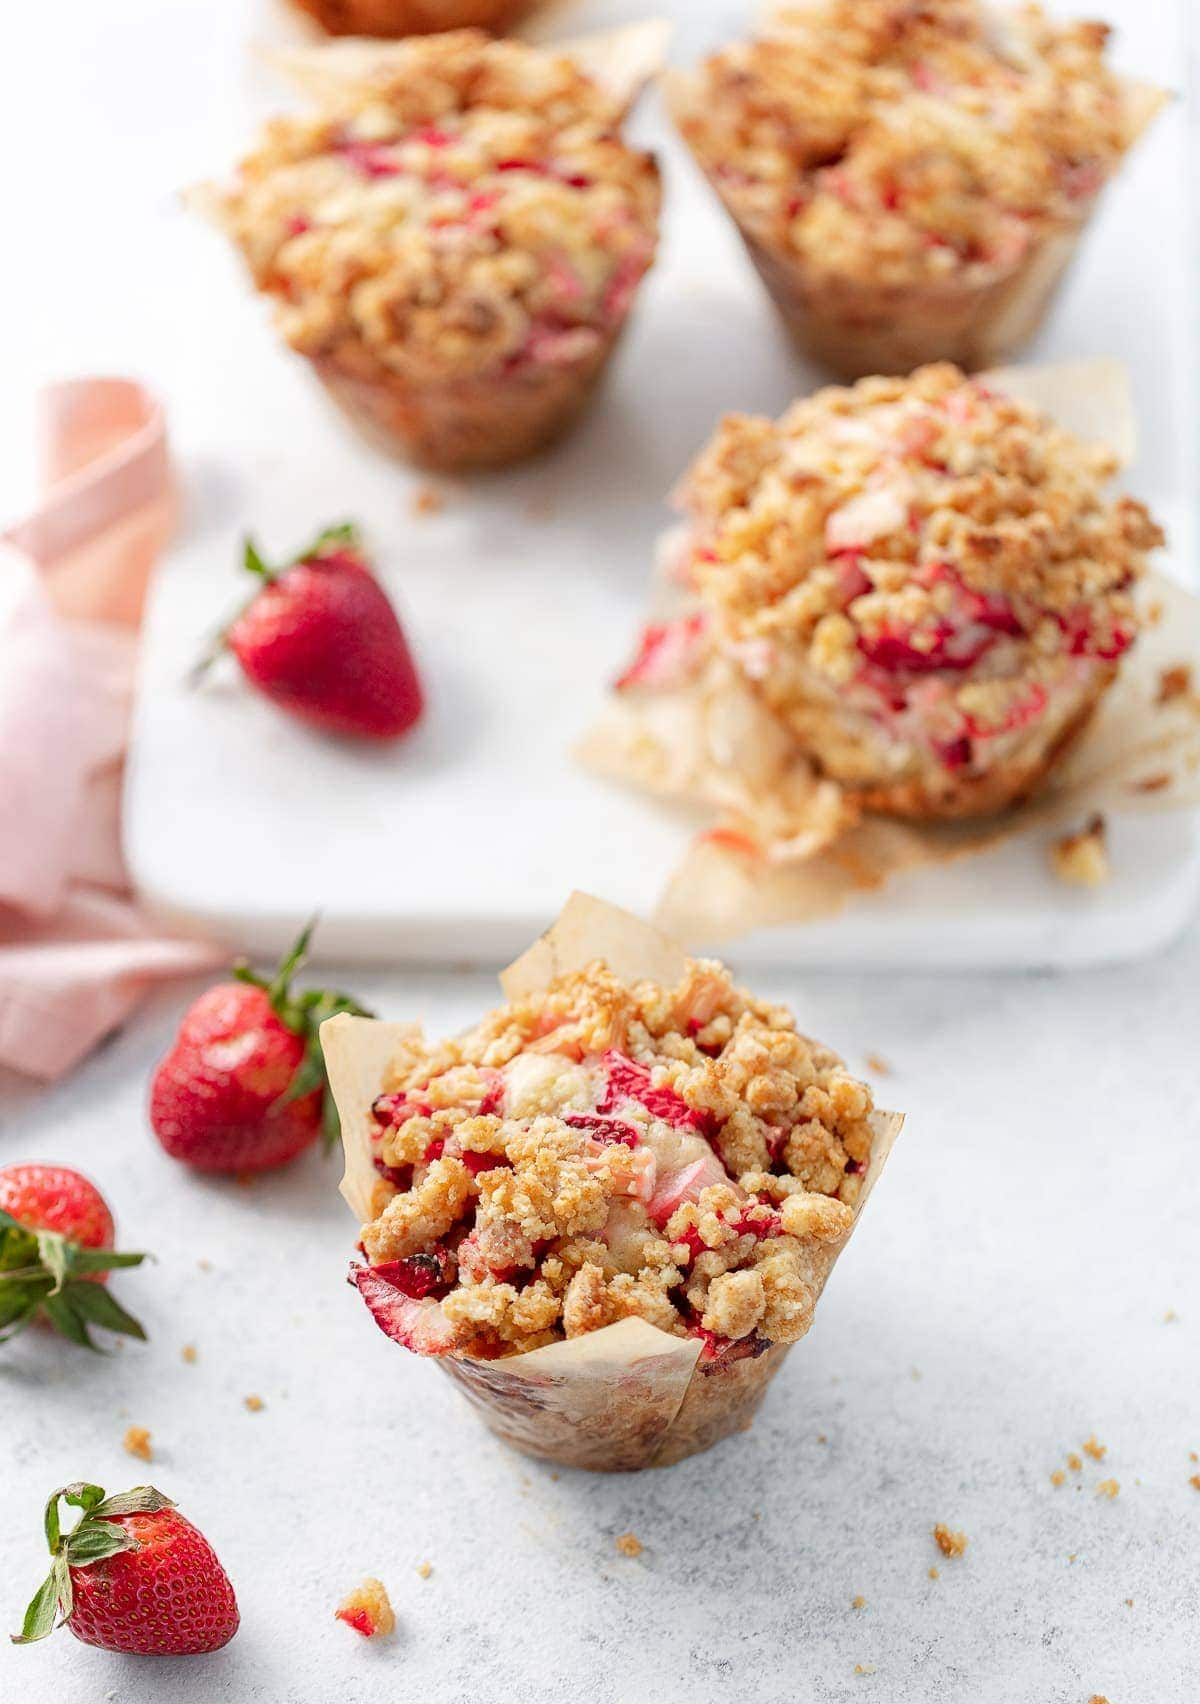 Oversized strawberry rhubarb muffins in bakery parchment paper.